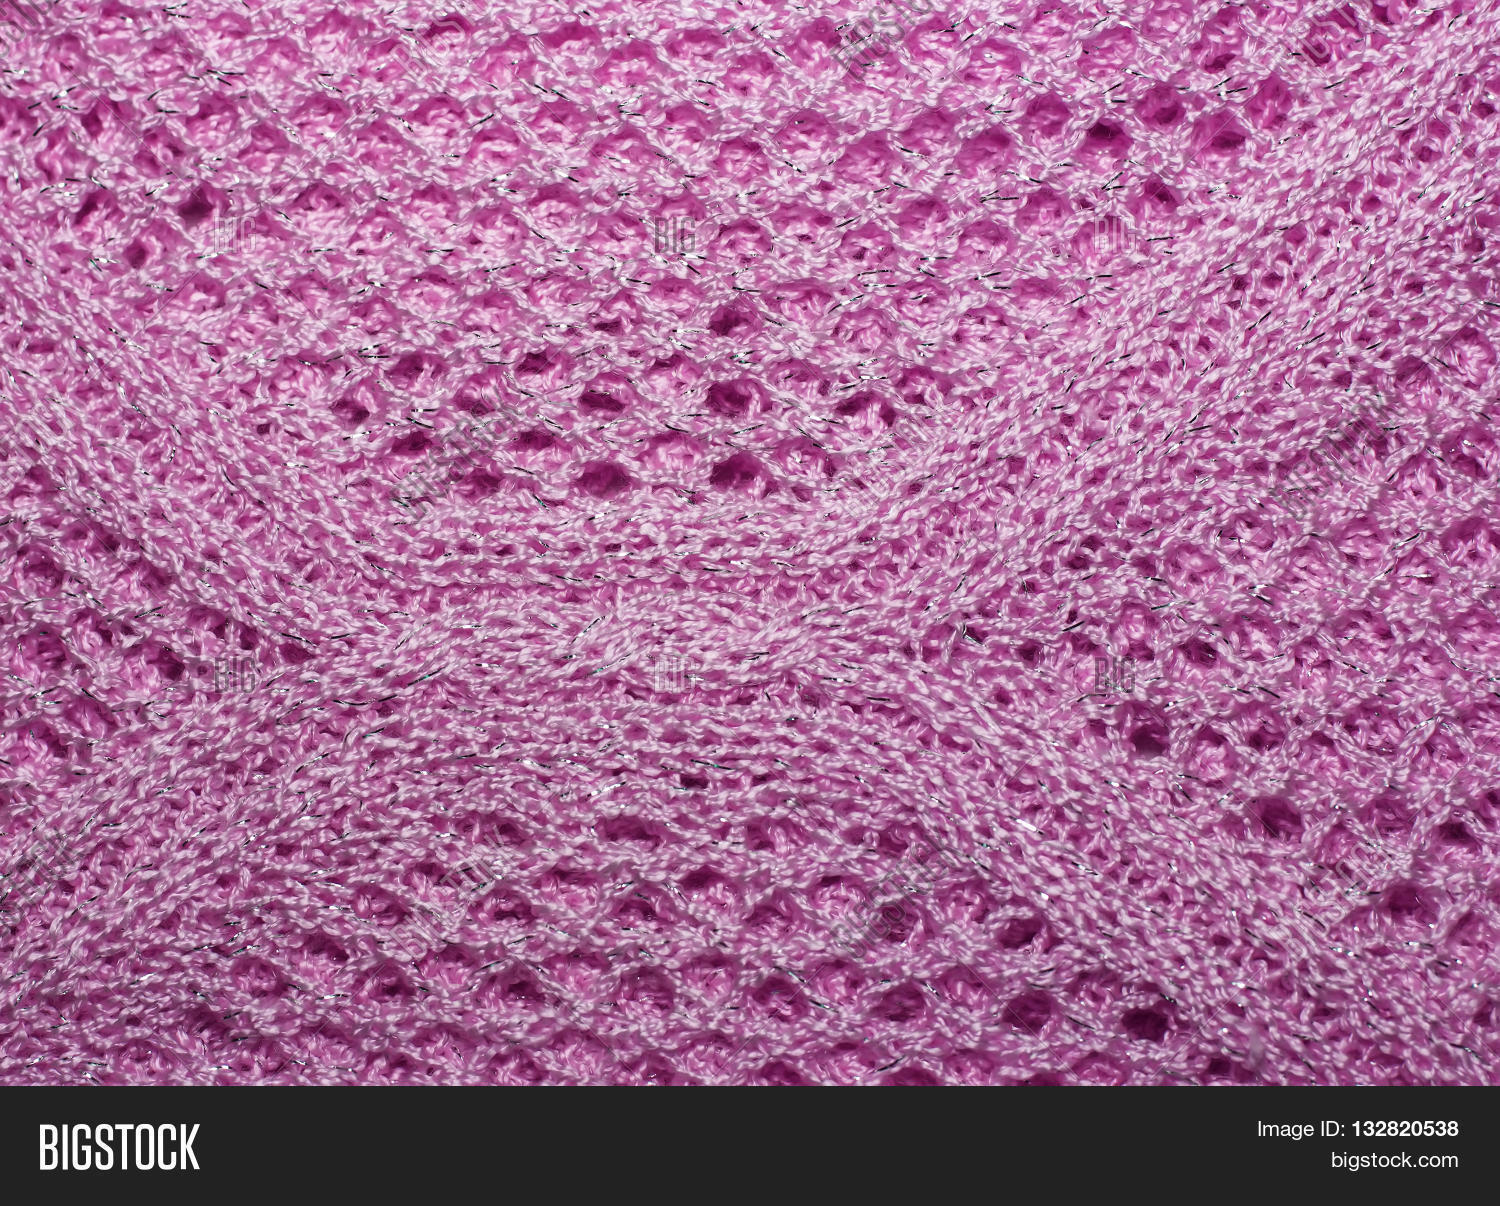 2834a2c9b63bb Pink Knitted Wool Fabric Texture Closeup. With Lurex Thread